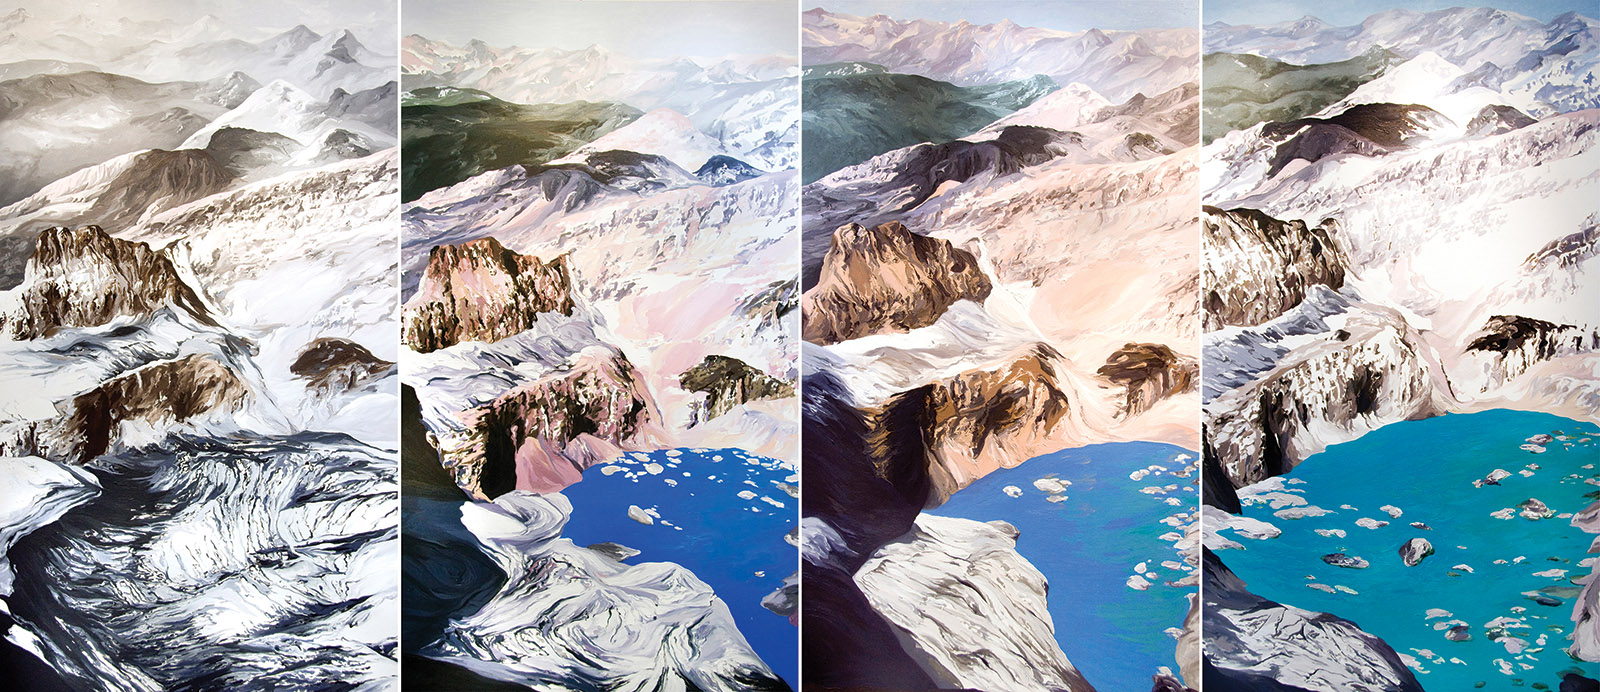 Diane Burko: Grinnell Mt. Gould #1, #2, #3, #4, 2009; based on USGS photos of Grinnell Glacier at Glacier National Park, Montana, between 1938 and 2006. Burko's work is on view in 'Endangered: From Glaciers to Reefs,' at the National Academy of Sciences, Washington, D.C., until January 31, 2019. The accompanying book is published by KMW Studio.